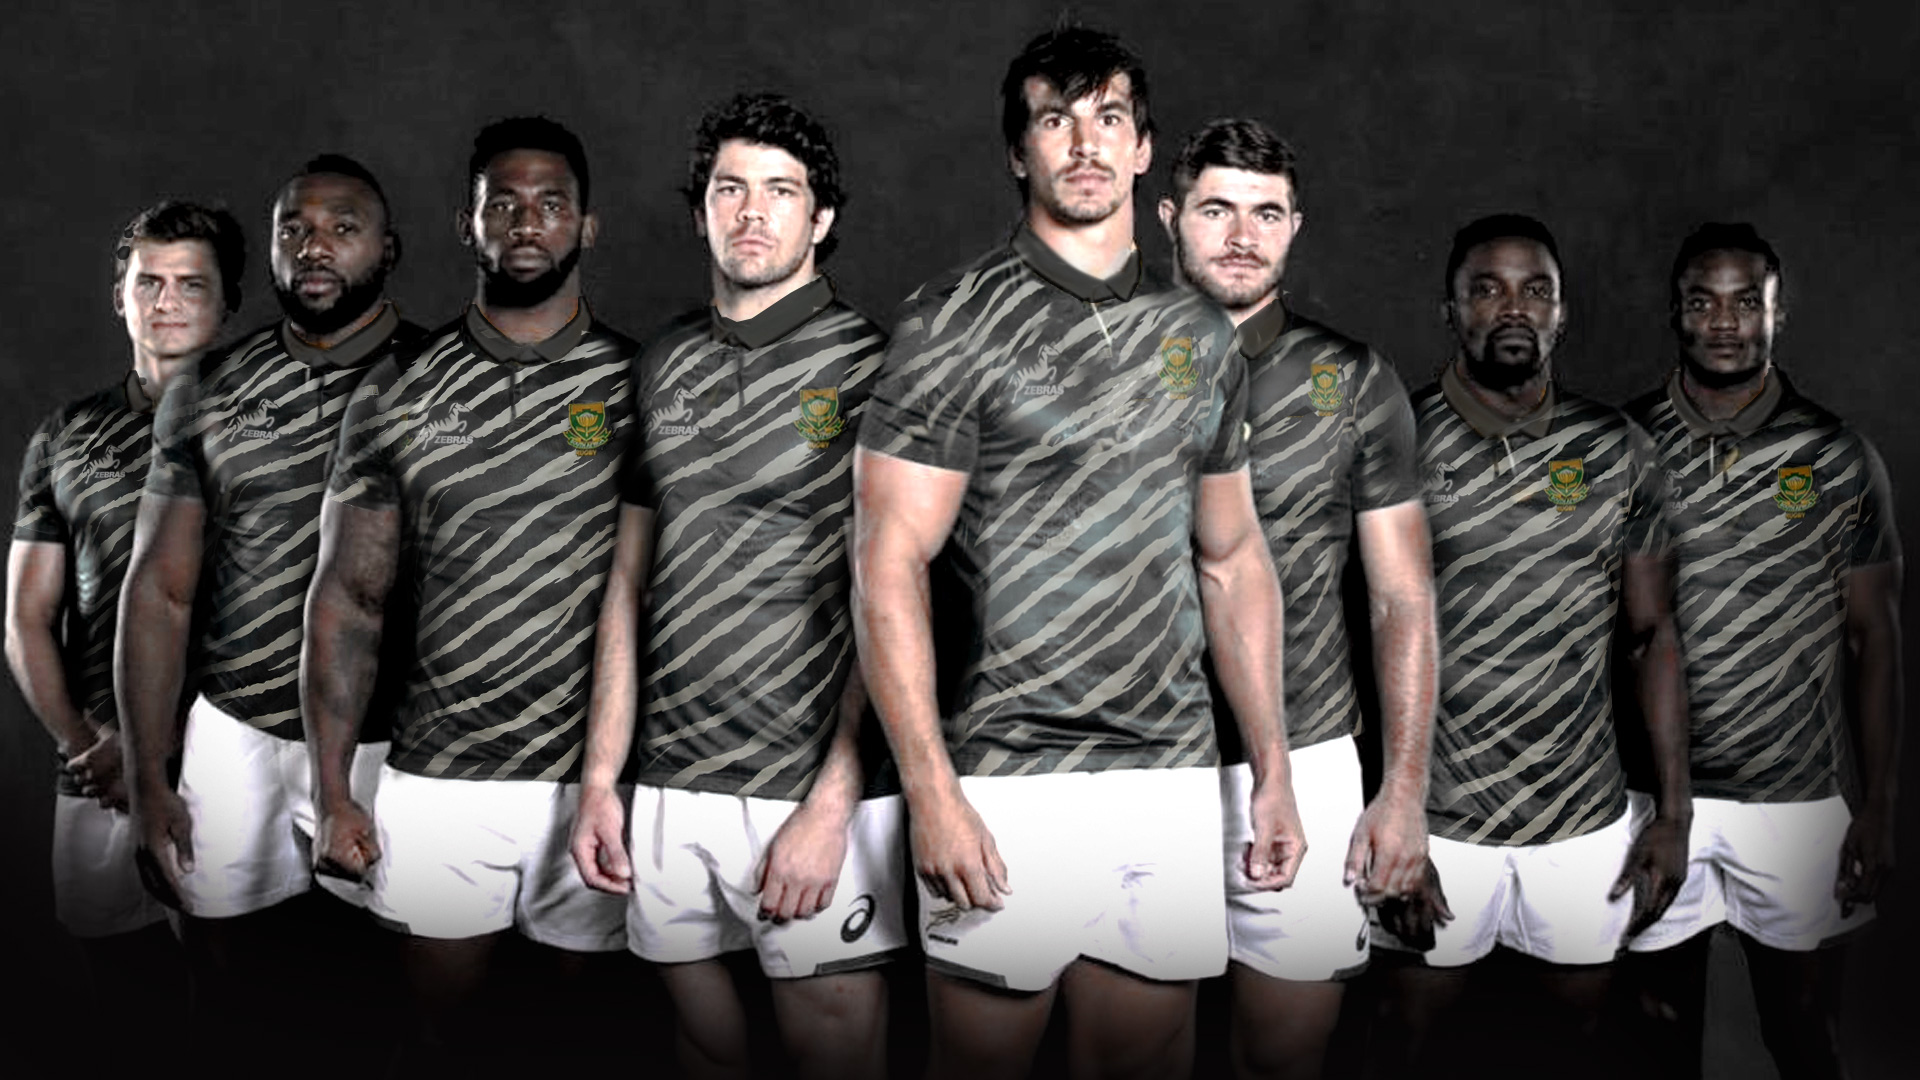 Springboks new Zebra kit.